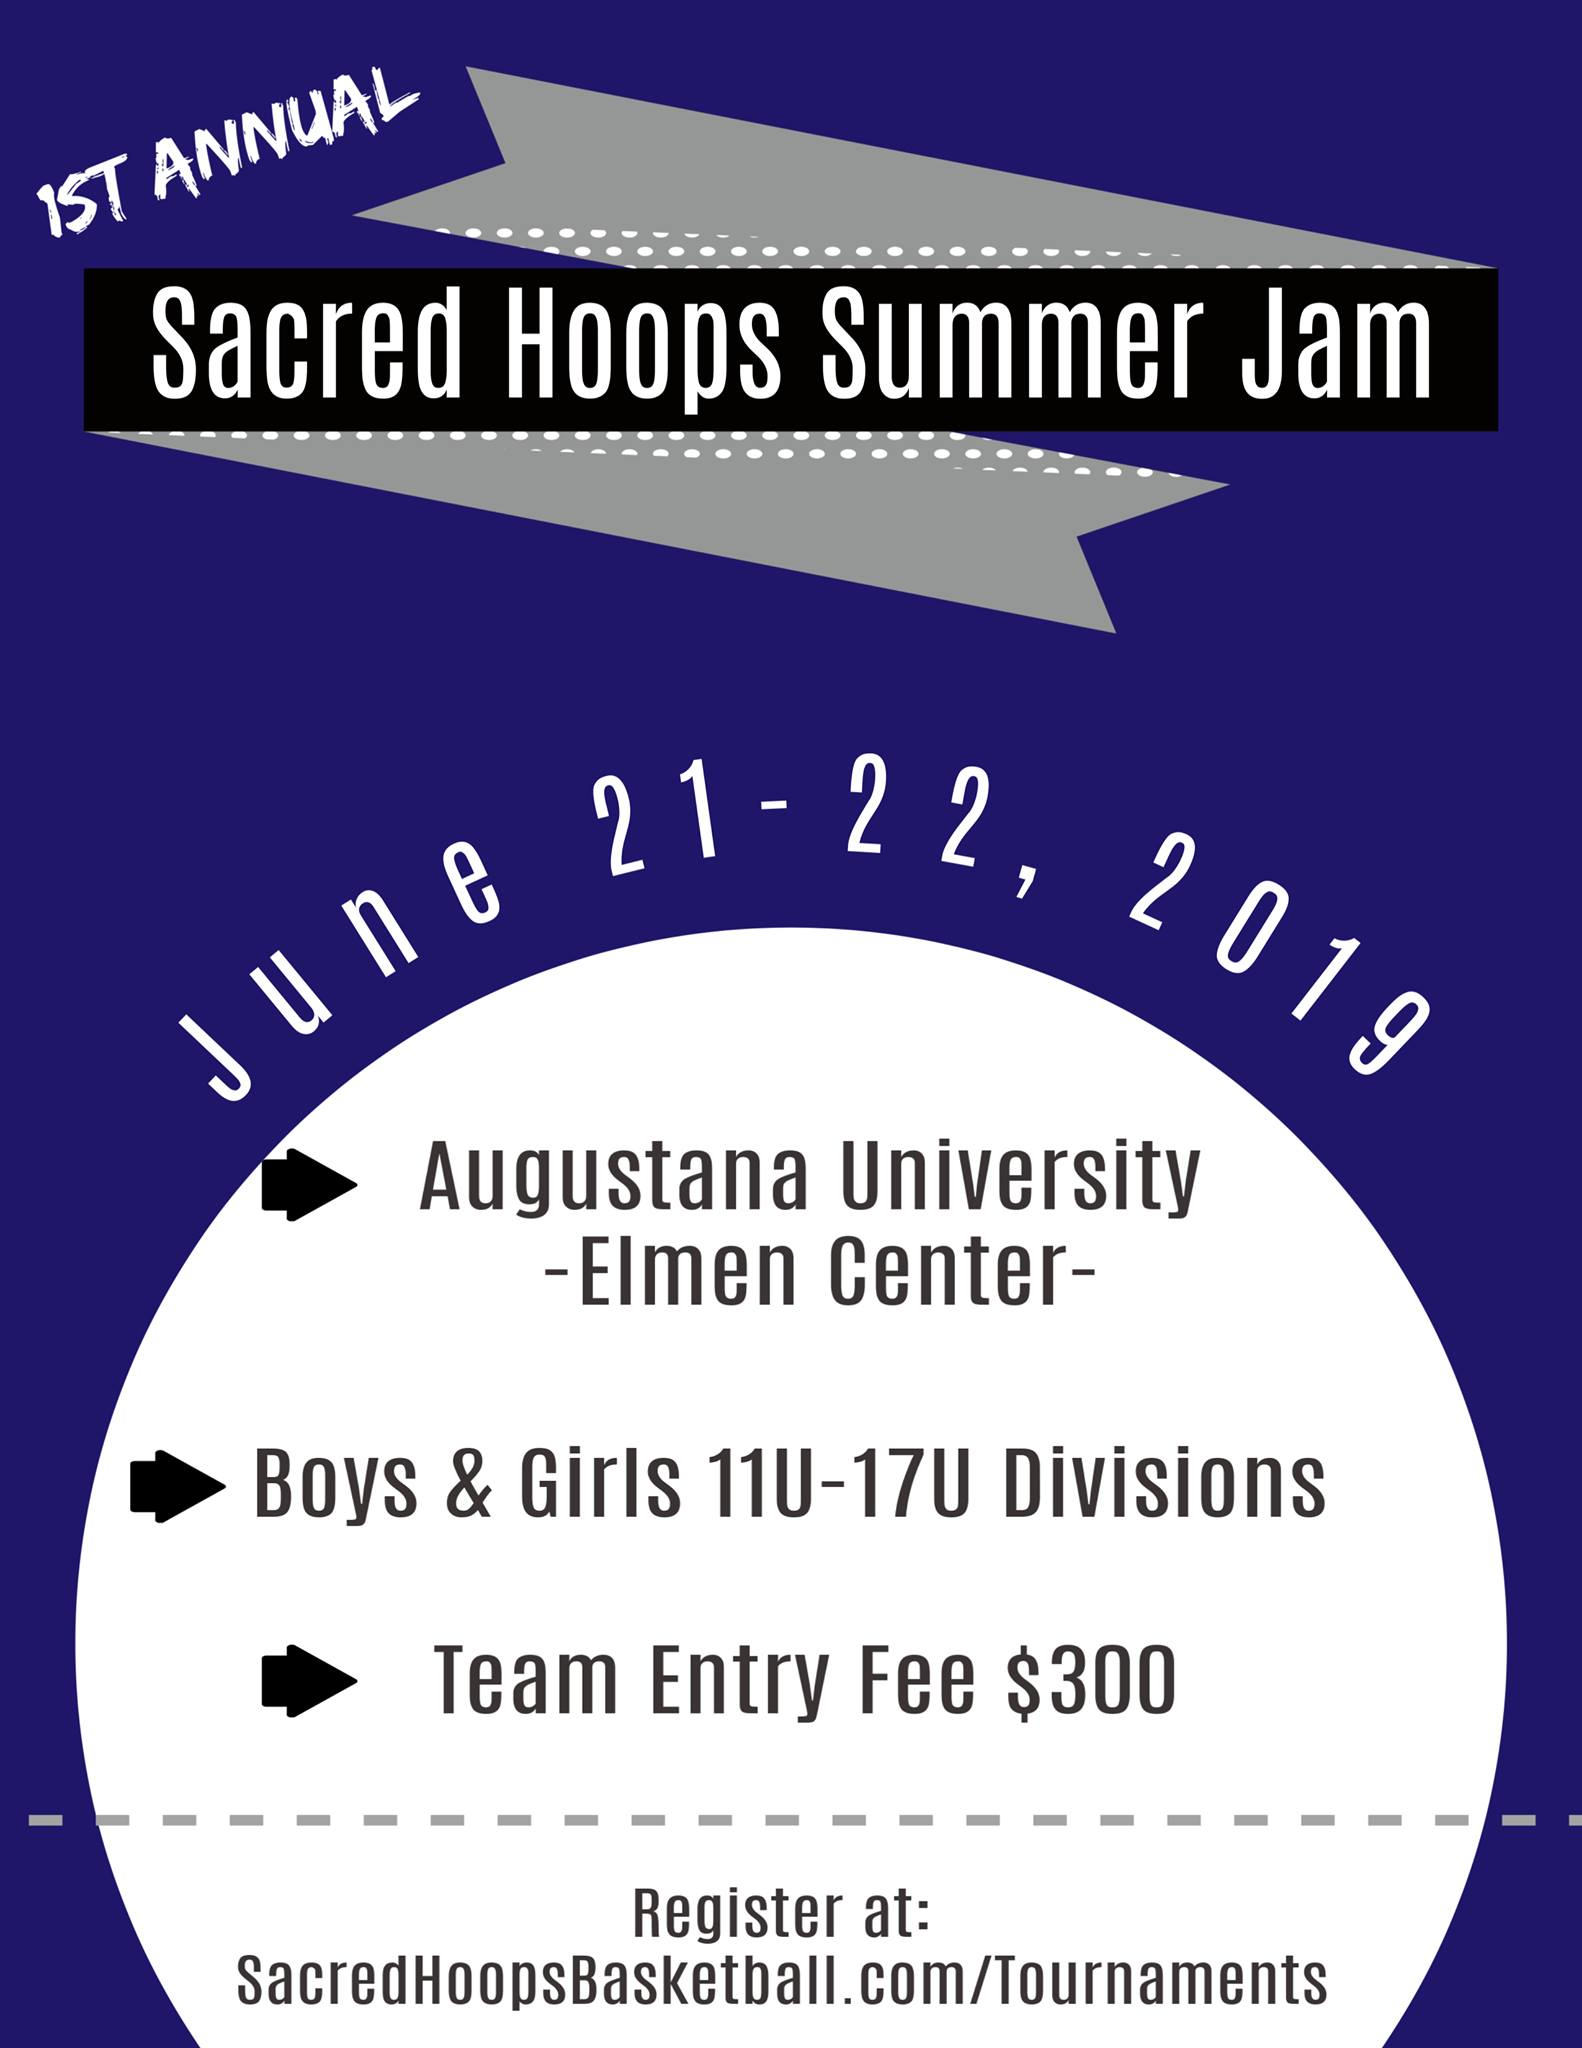 - 3 Game GuaranteesPaid Referees1 Day tournamentsMulti Team discounts availableLink to register: https://sacredhoopsbasketball.com/tournaments